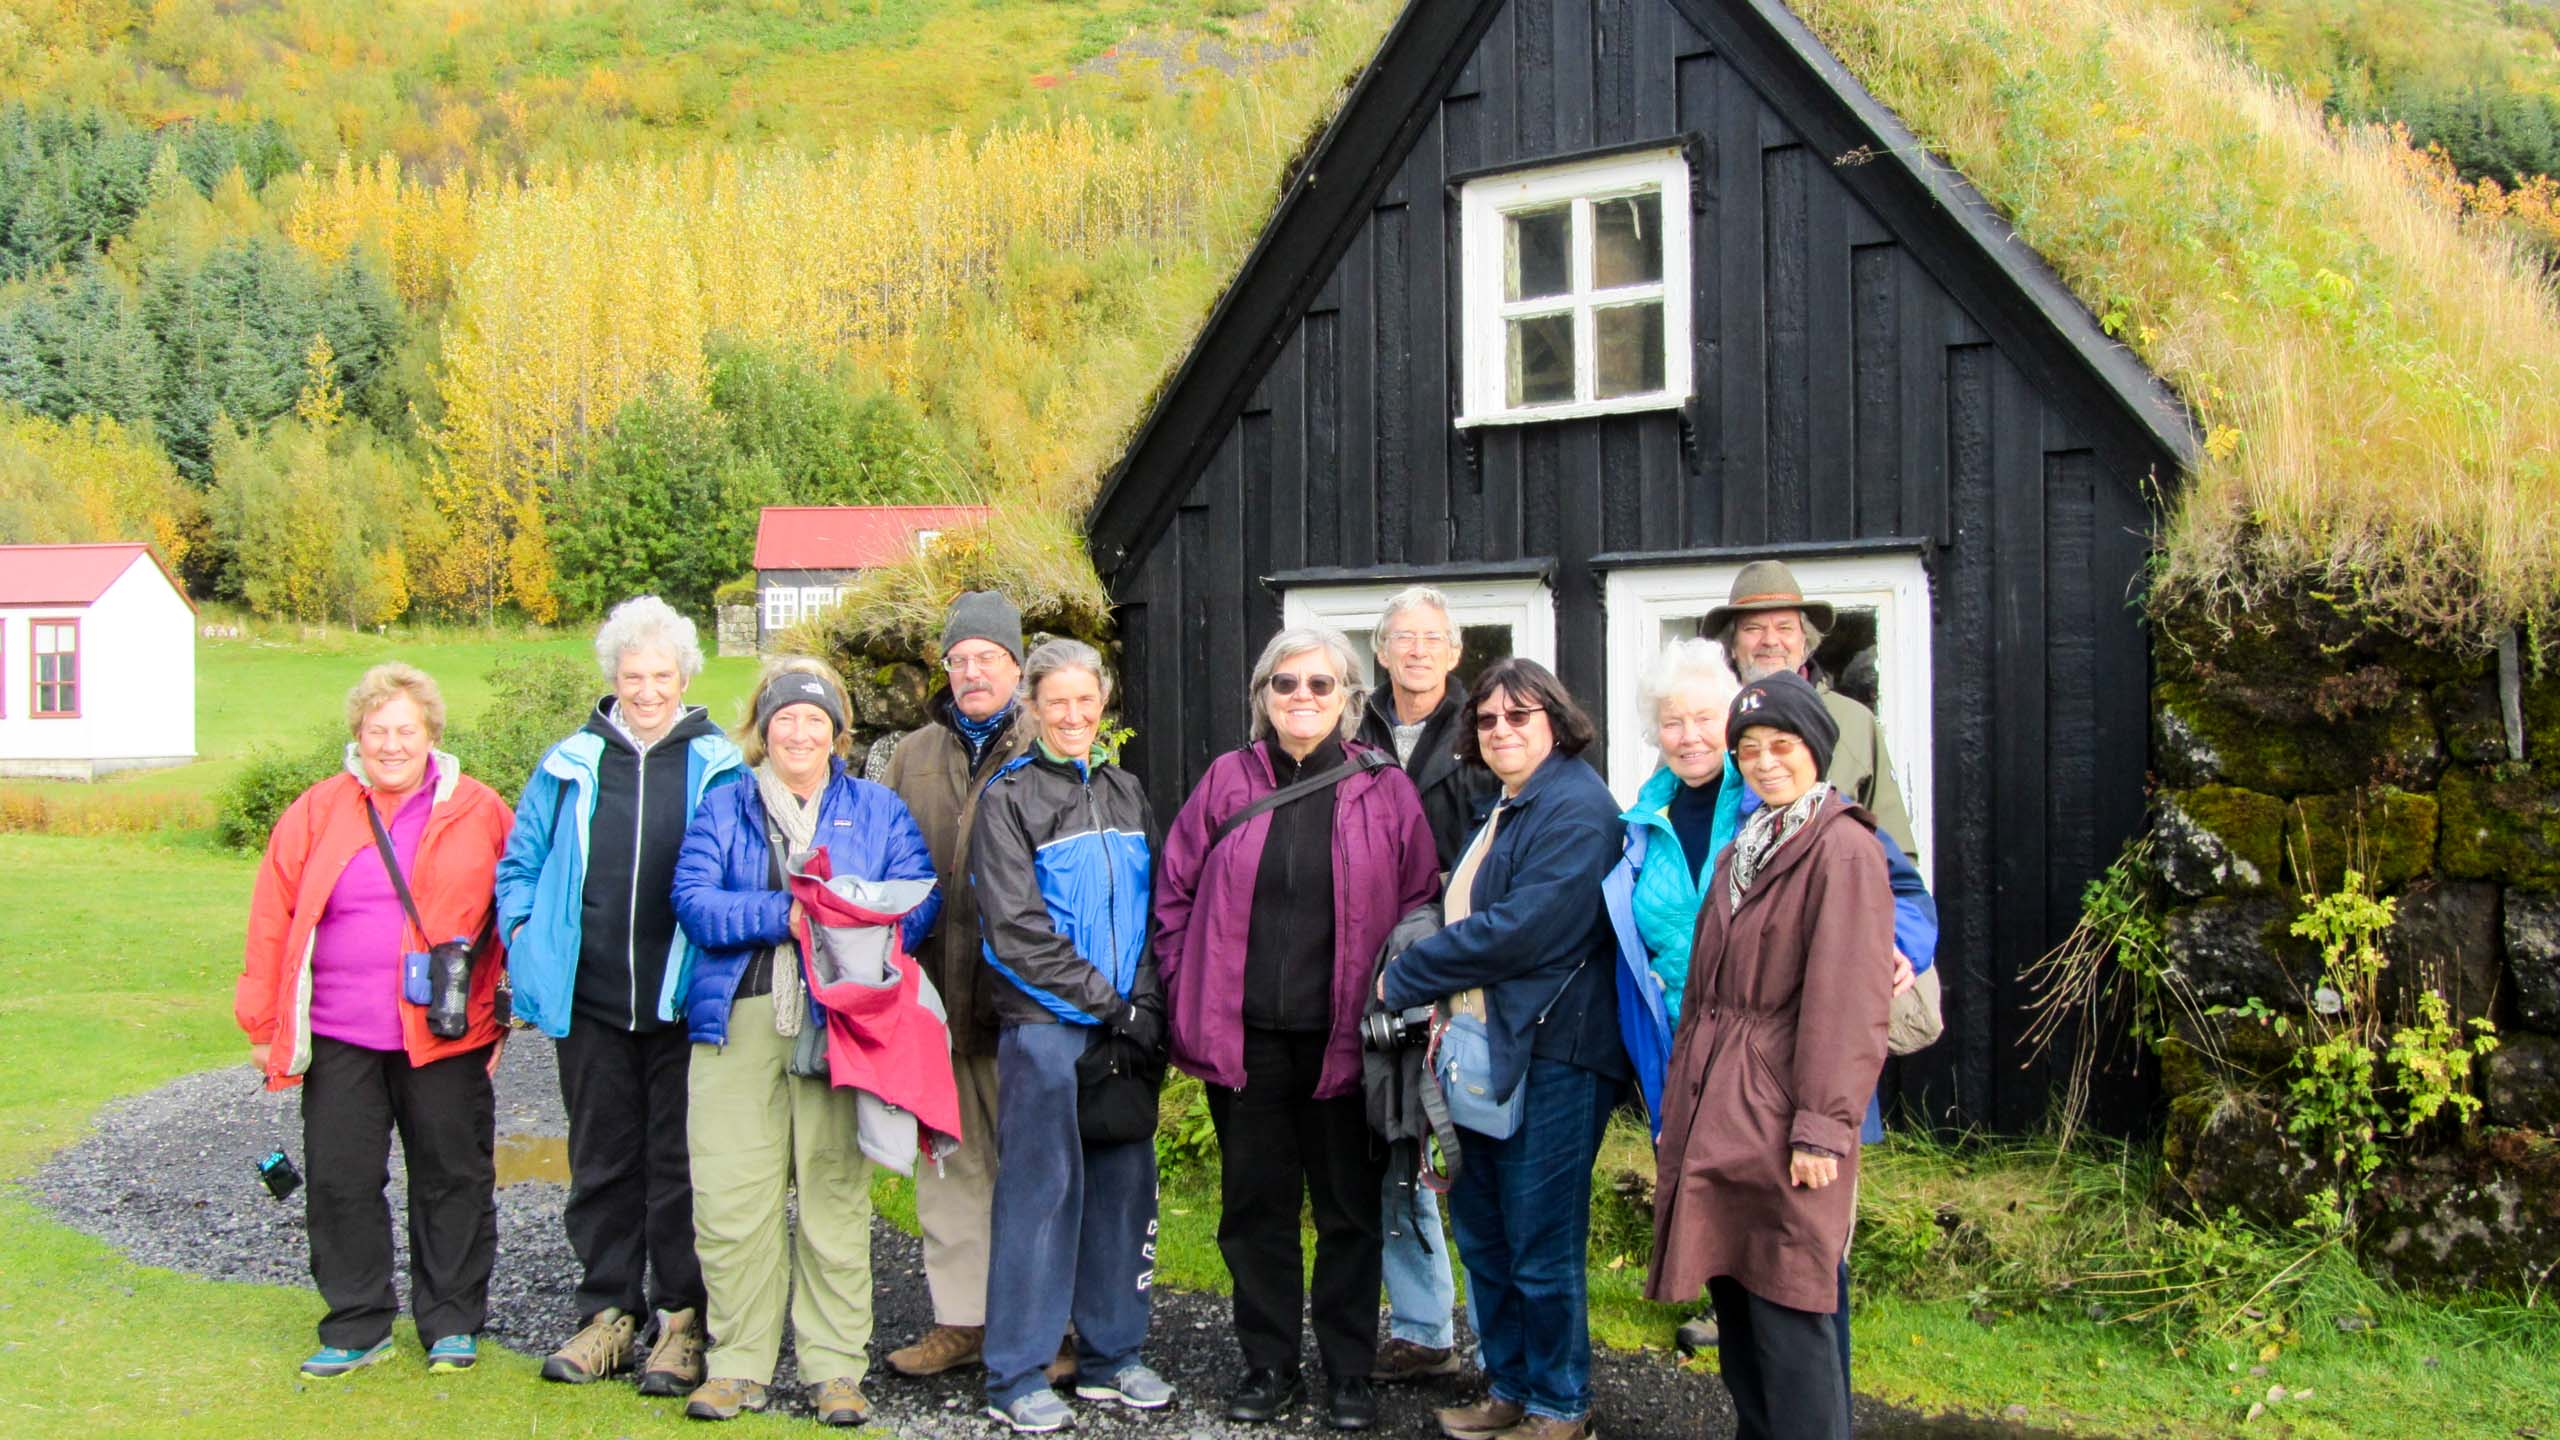 Group of travelers stands near Iceland cottage